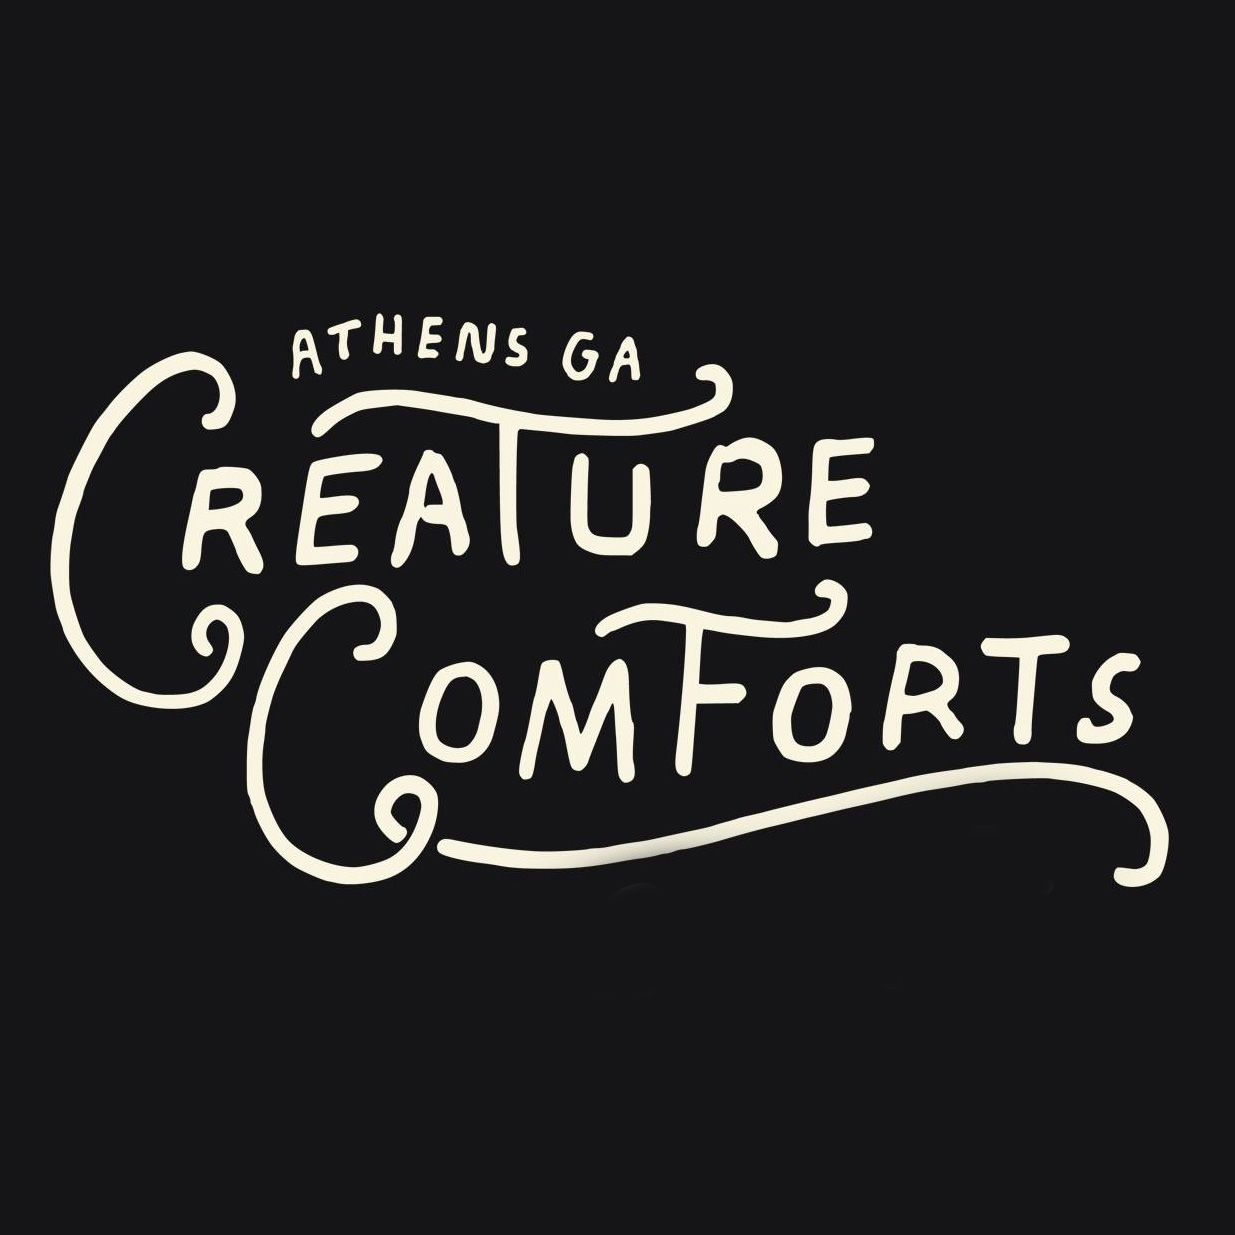 Thayer Sarrano - The Head - Creatre Comforts (Athens, GA)